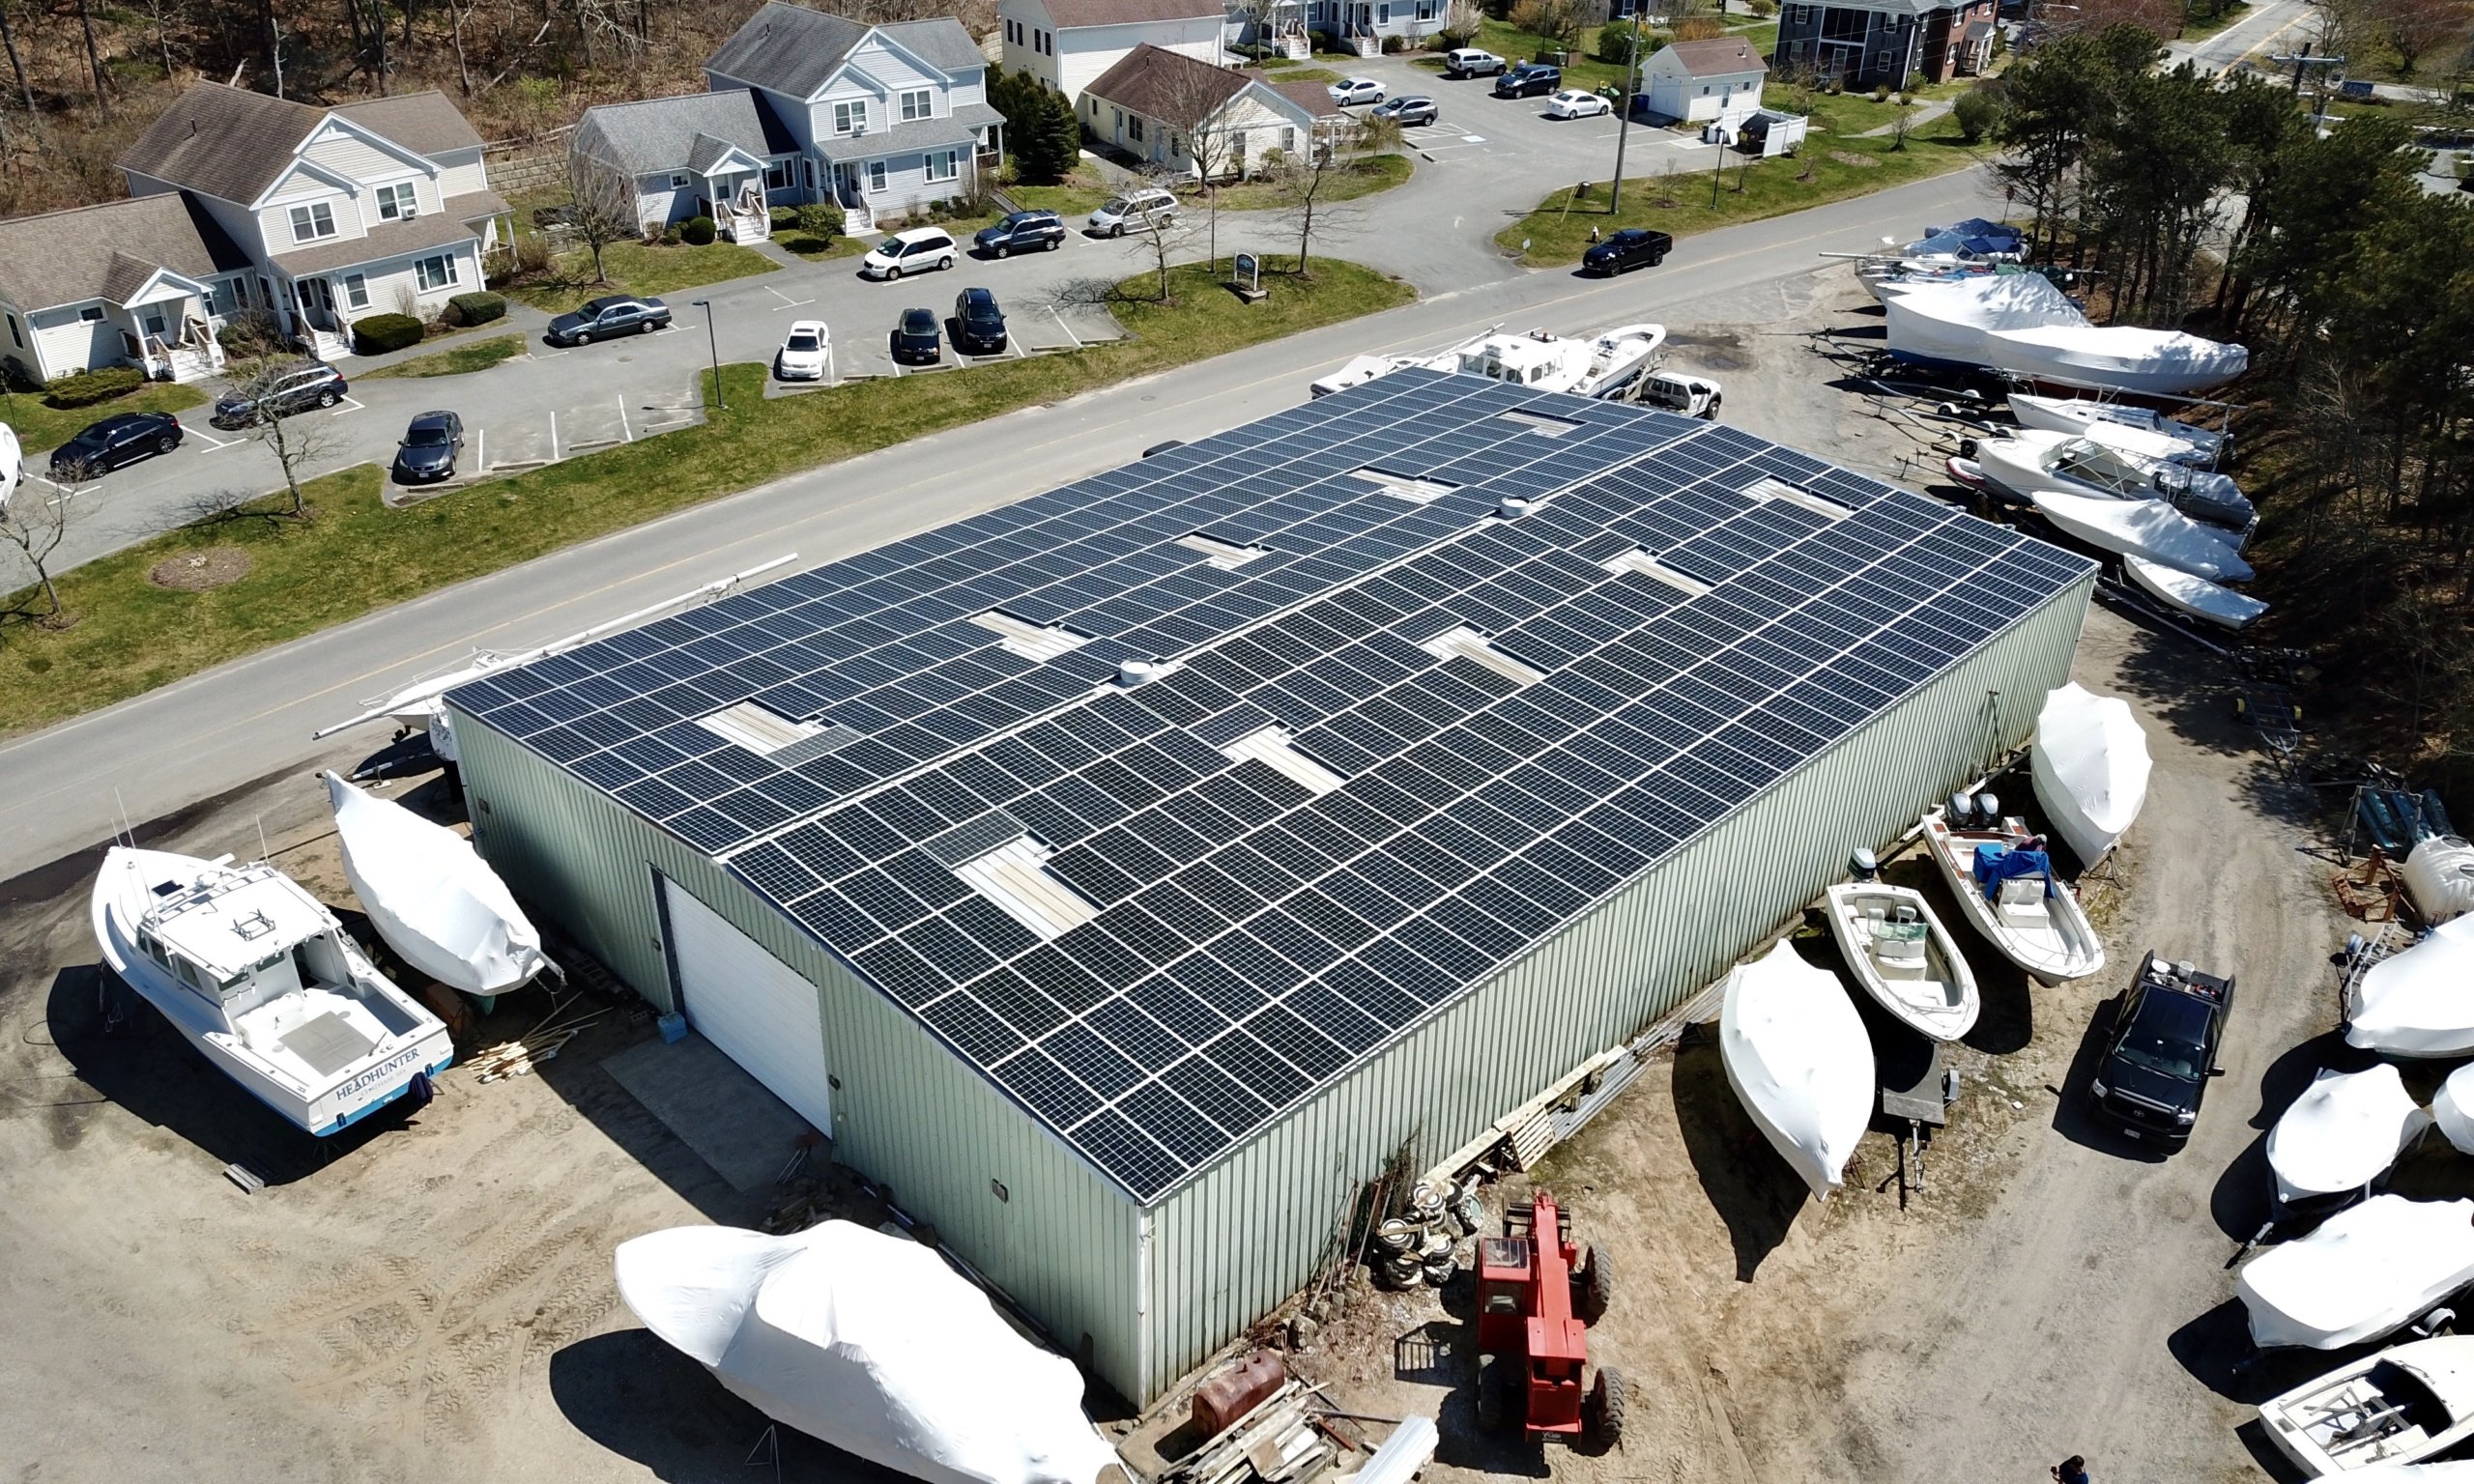 chatham commercial solar installation at stage harbor marine. Installed by My Generation Energy of Cape Cod